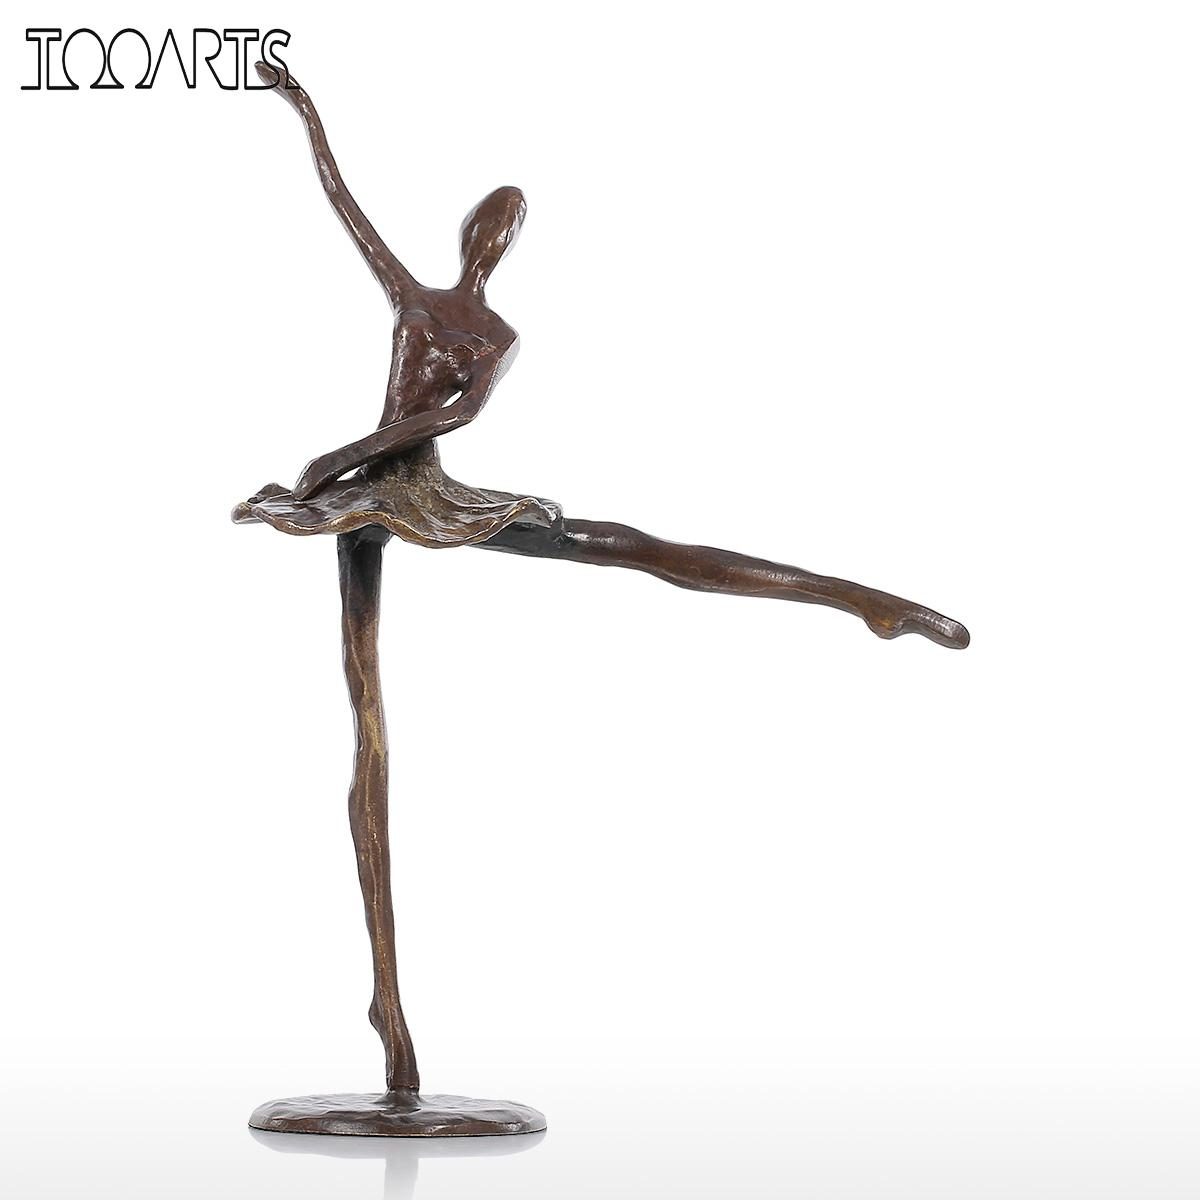 compare prices on metal dancing figurine online shoppingbuy low  - tooarts mini figurines ballet bronze statue artificial home decor metalsculpture modern dance gift home decoration